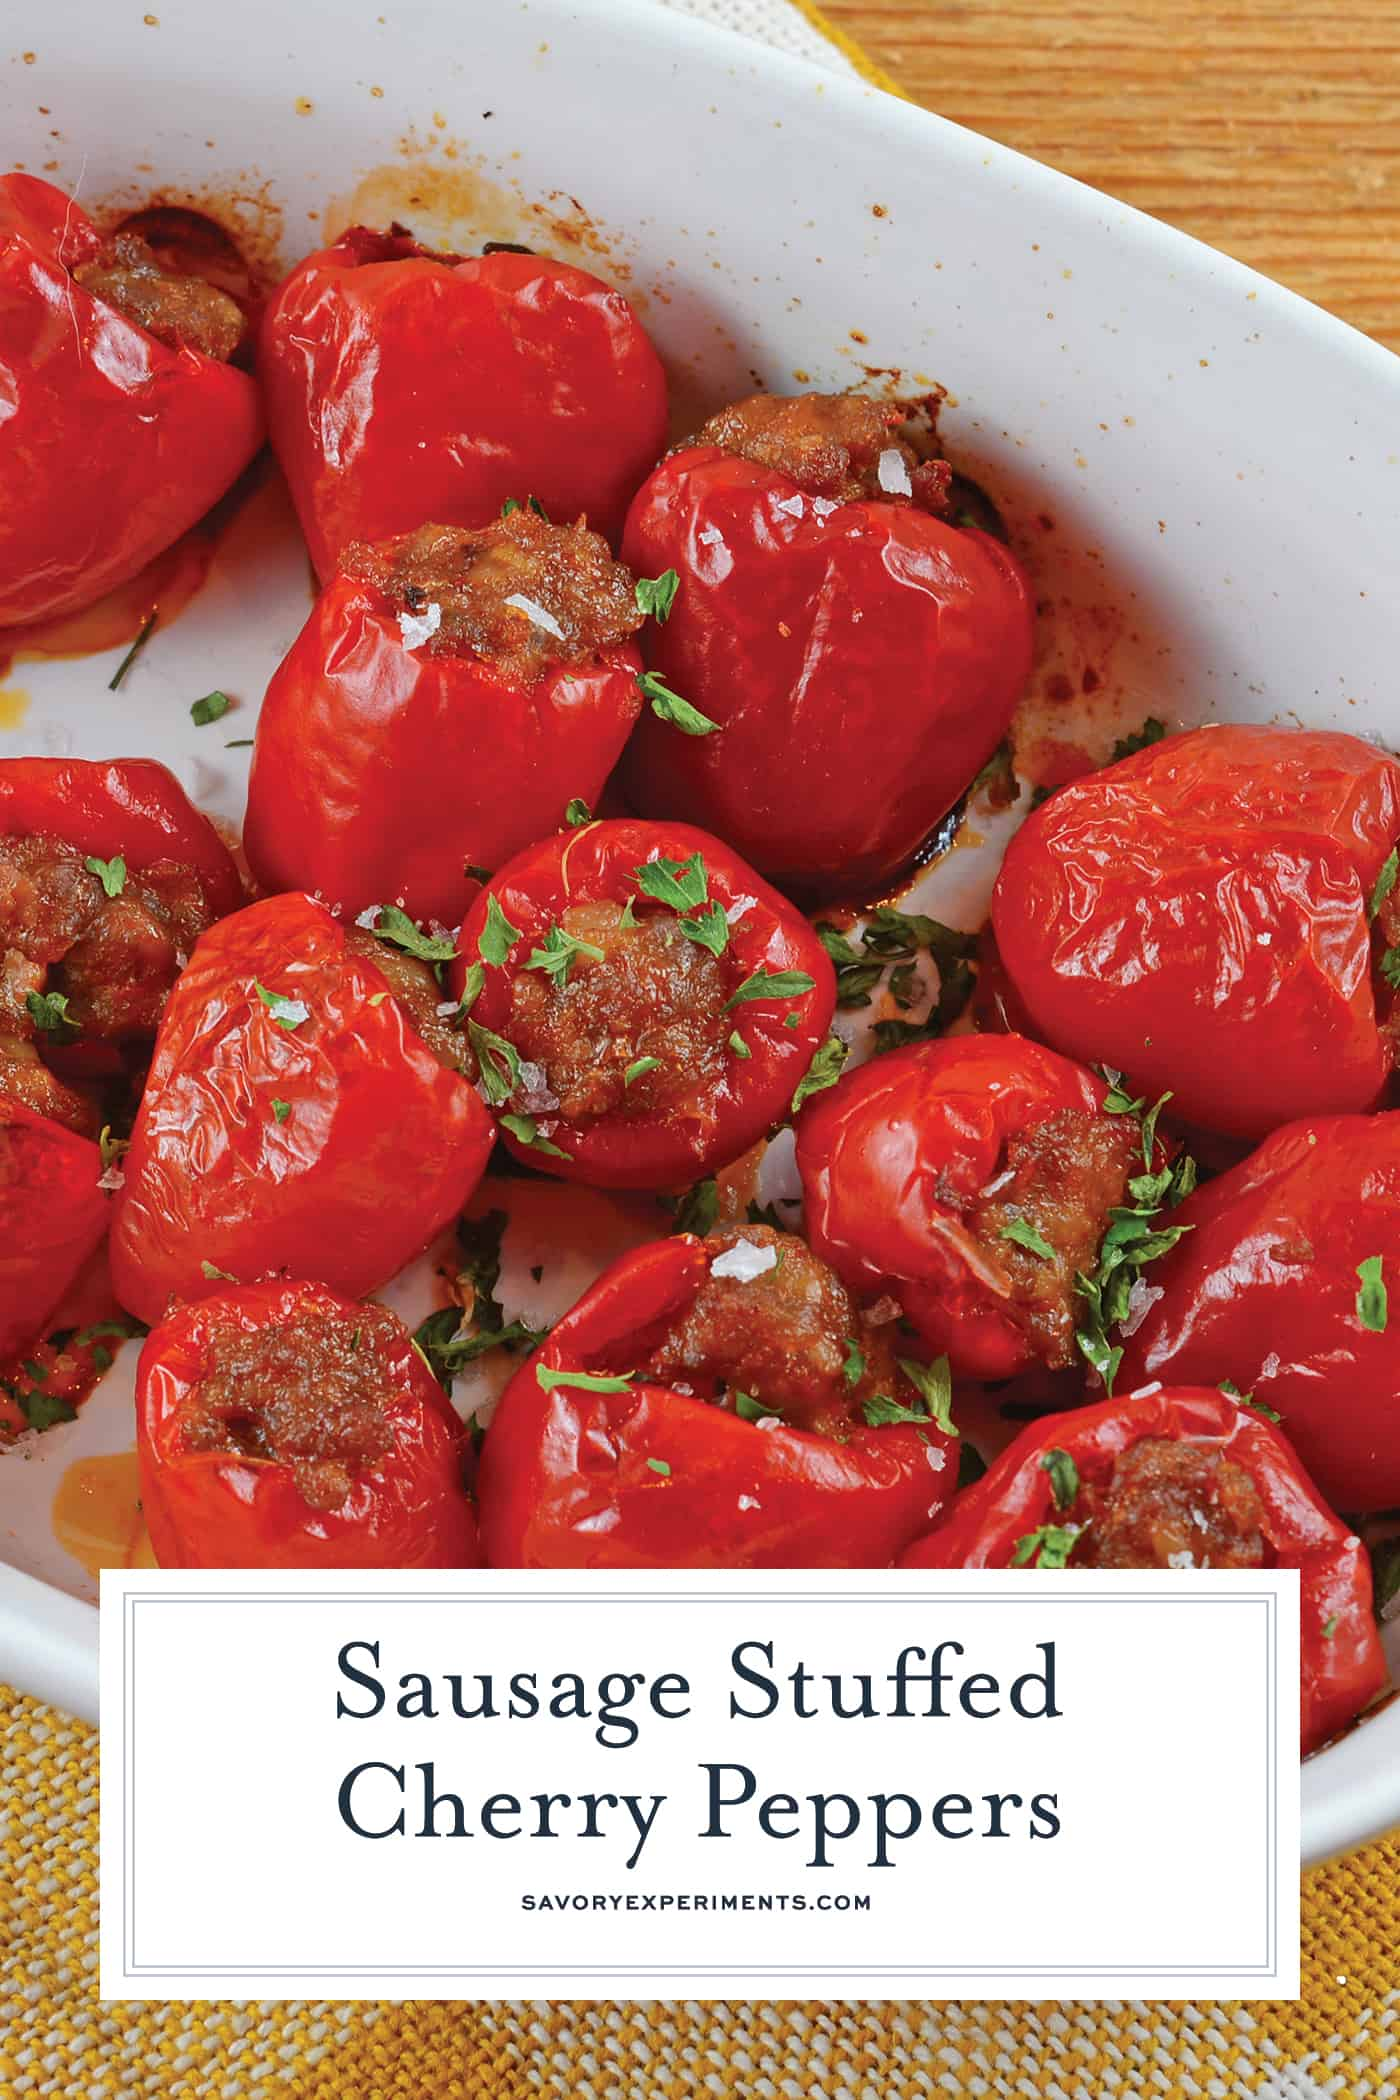 Sausage Stuffed Cherry Peppers are a tasty and easy appetizer recipe using only 5 ingredients. The perfect party food for any occasion! #stuffedpeppers #easyappetizers www.savoryexperiments.com